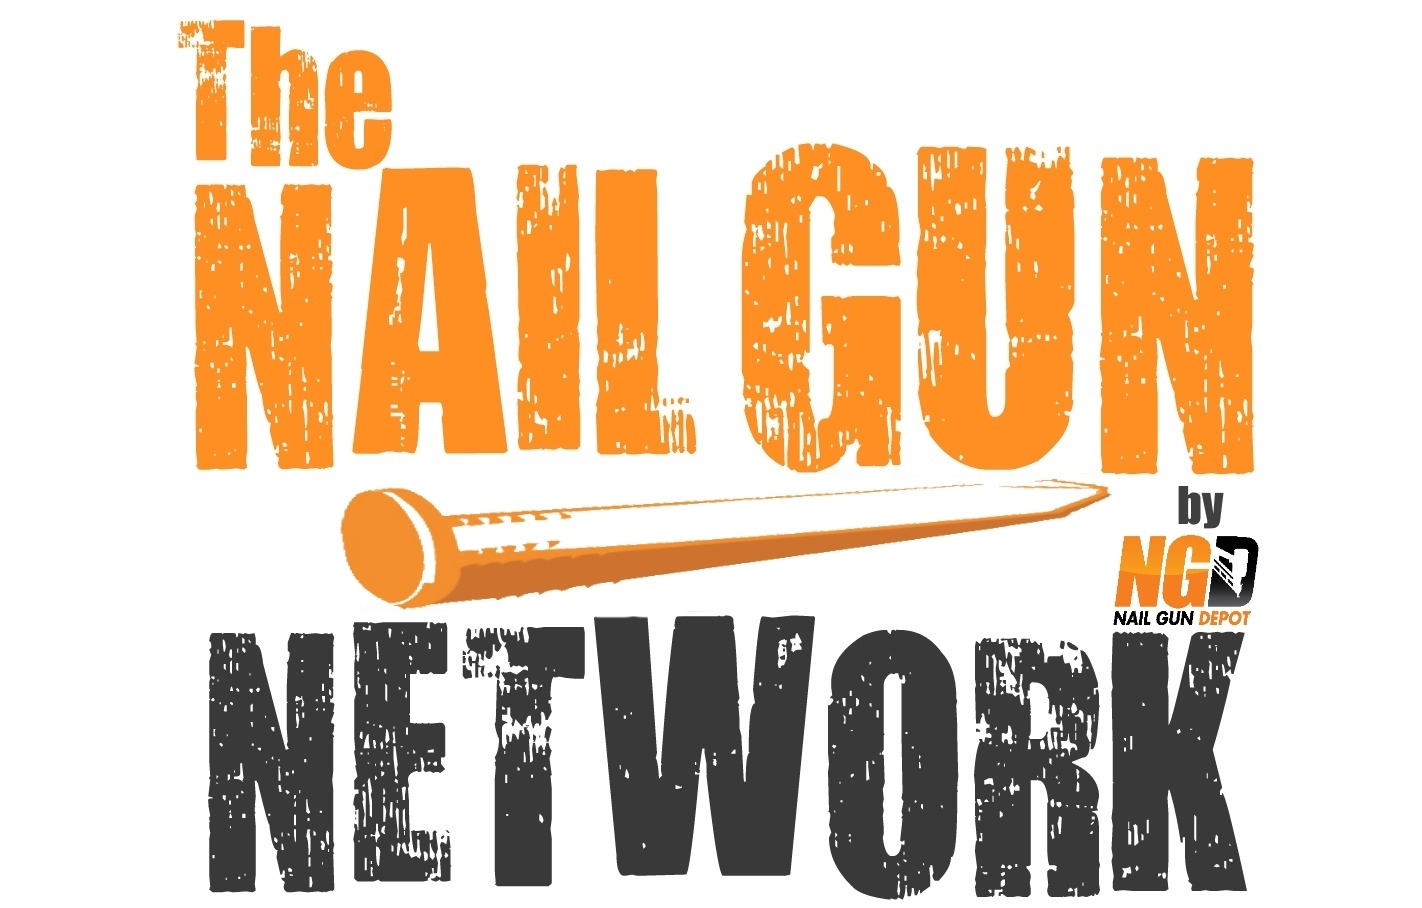 Nail Gun Network Official Logo